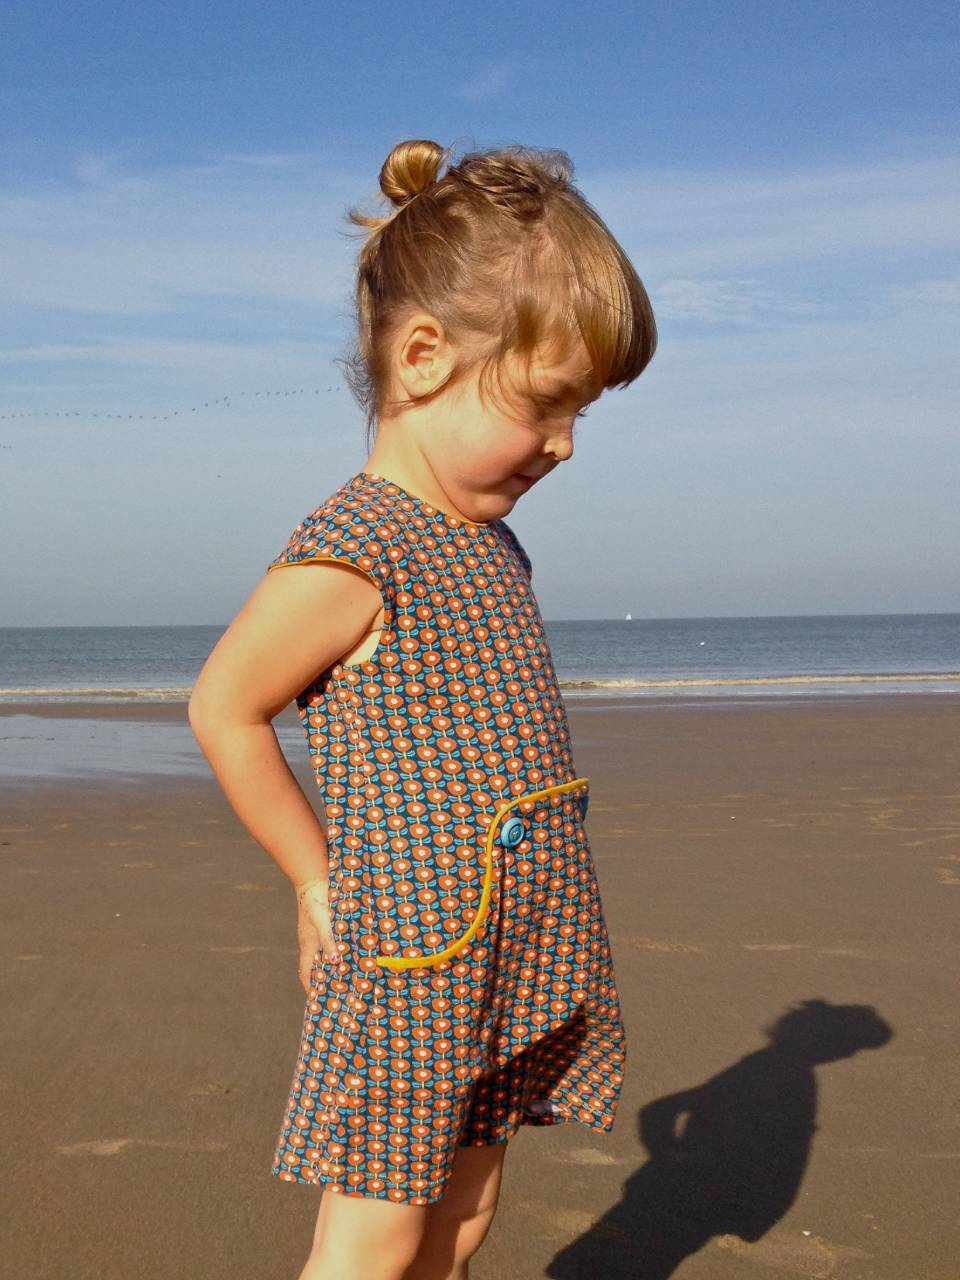 Compagnie-M_Louisa dresses_annika_seaside 2